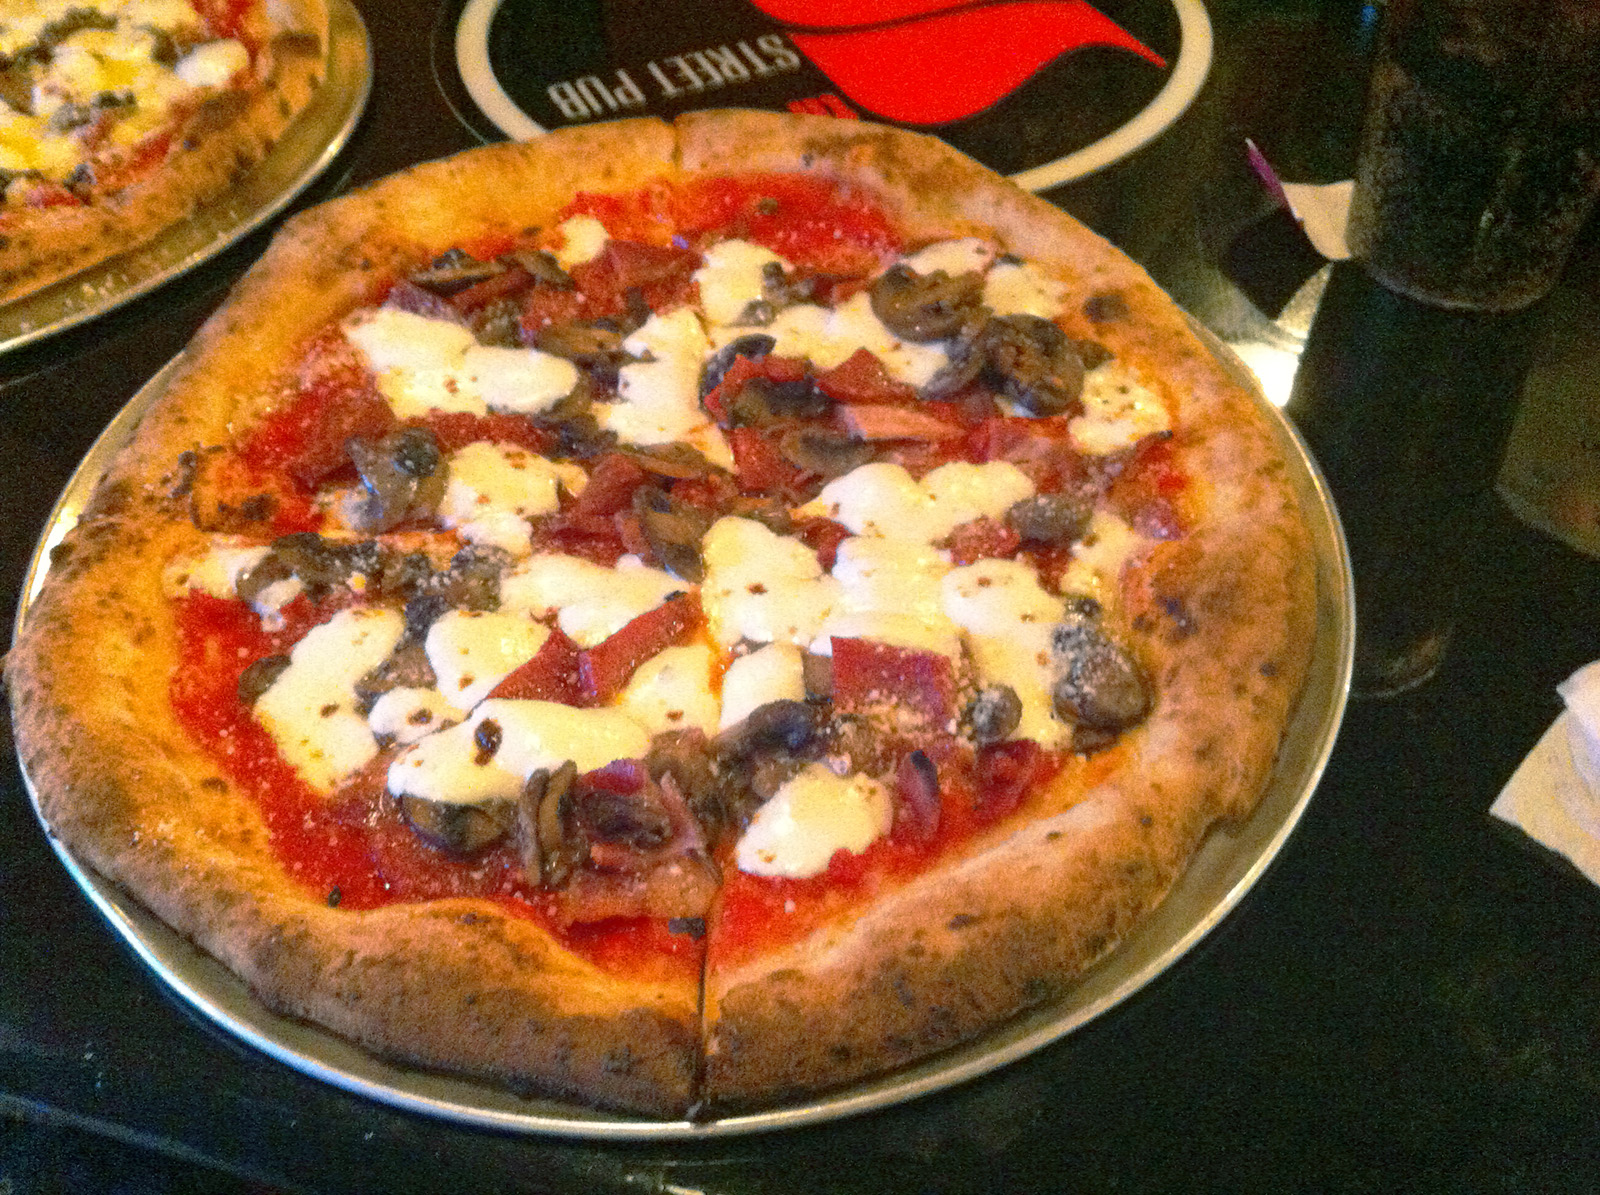 Perrysburg pizza pub delivers on authenticity The Blade